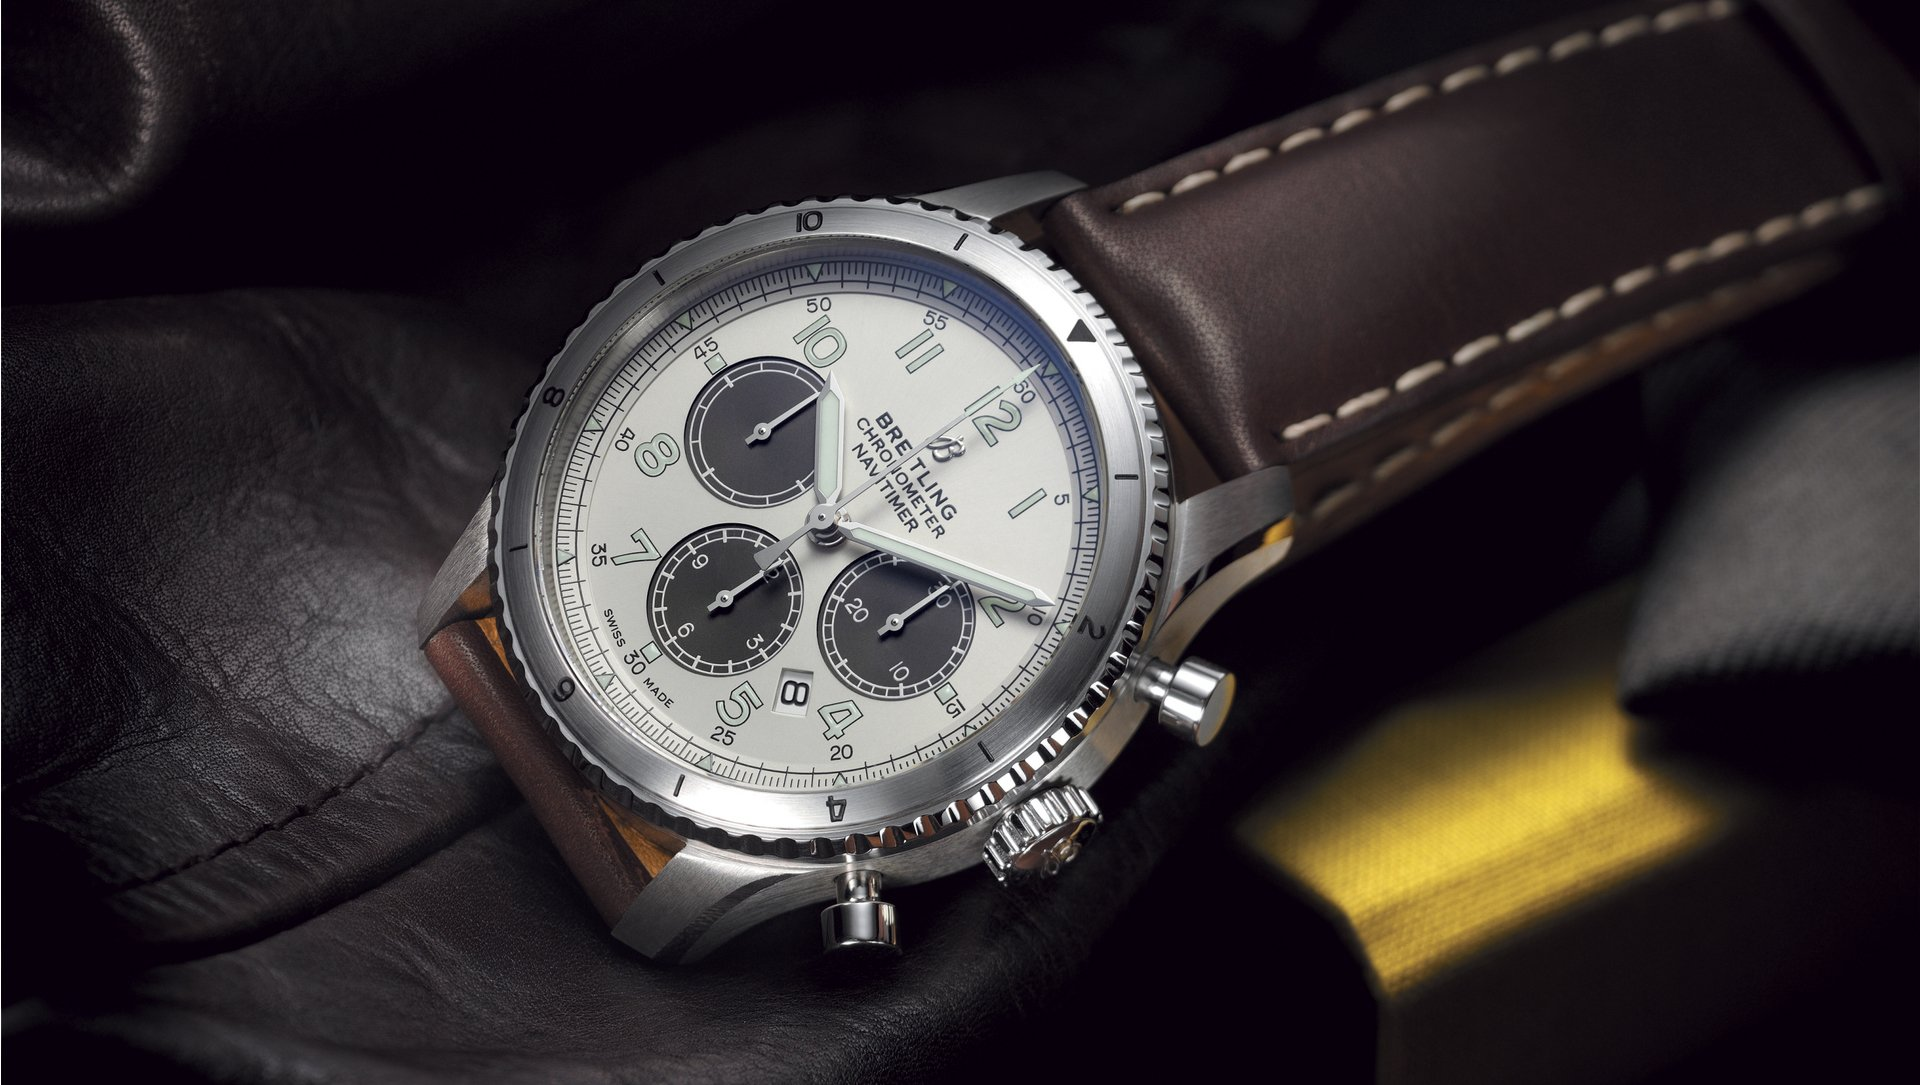 Fitted with the brown leather strap, the limited edition Breitling Navitimer looks gentle and reliable.